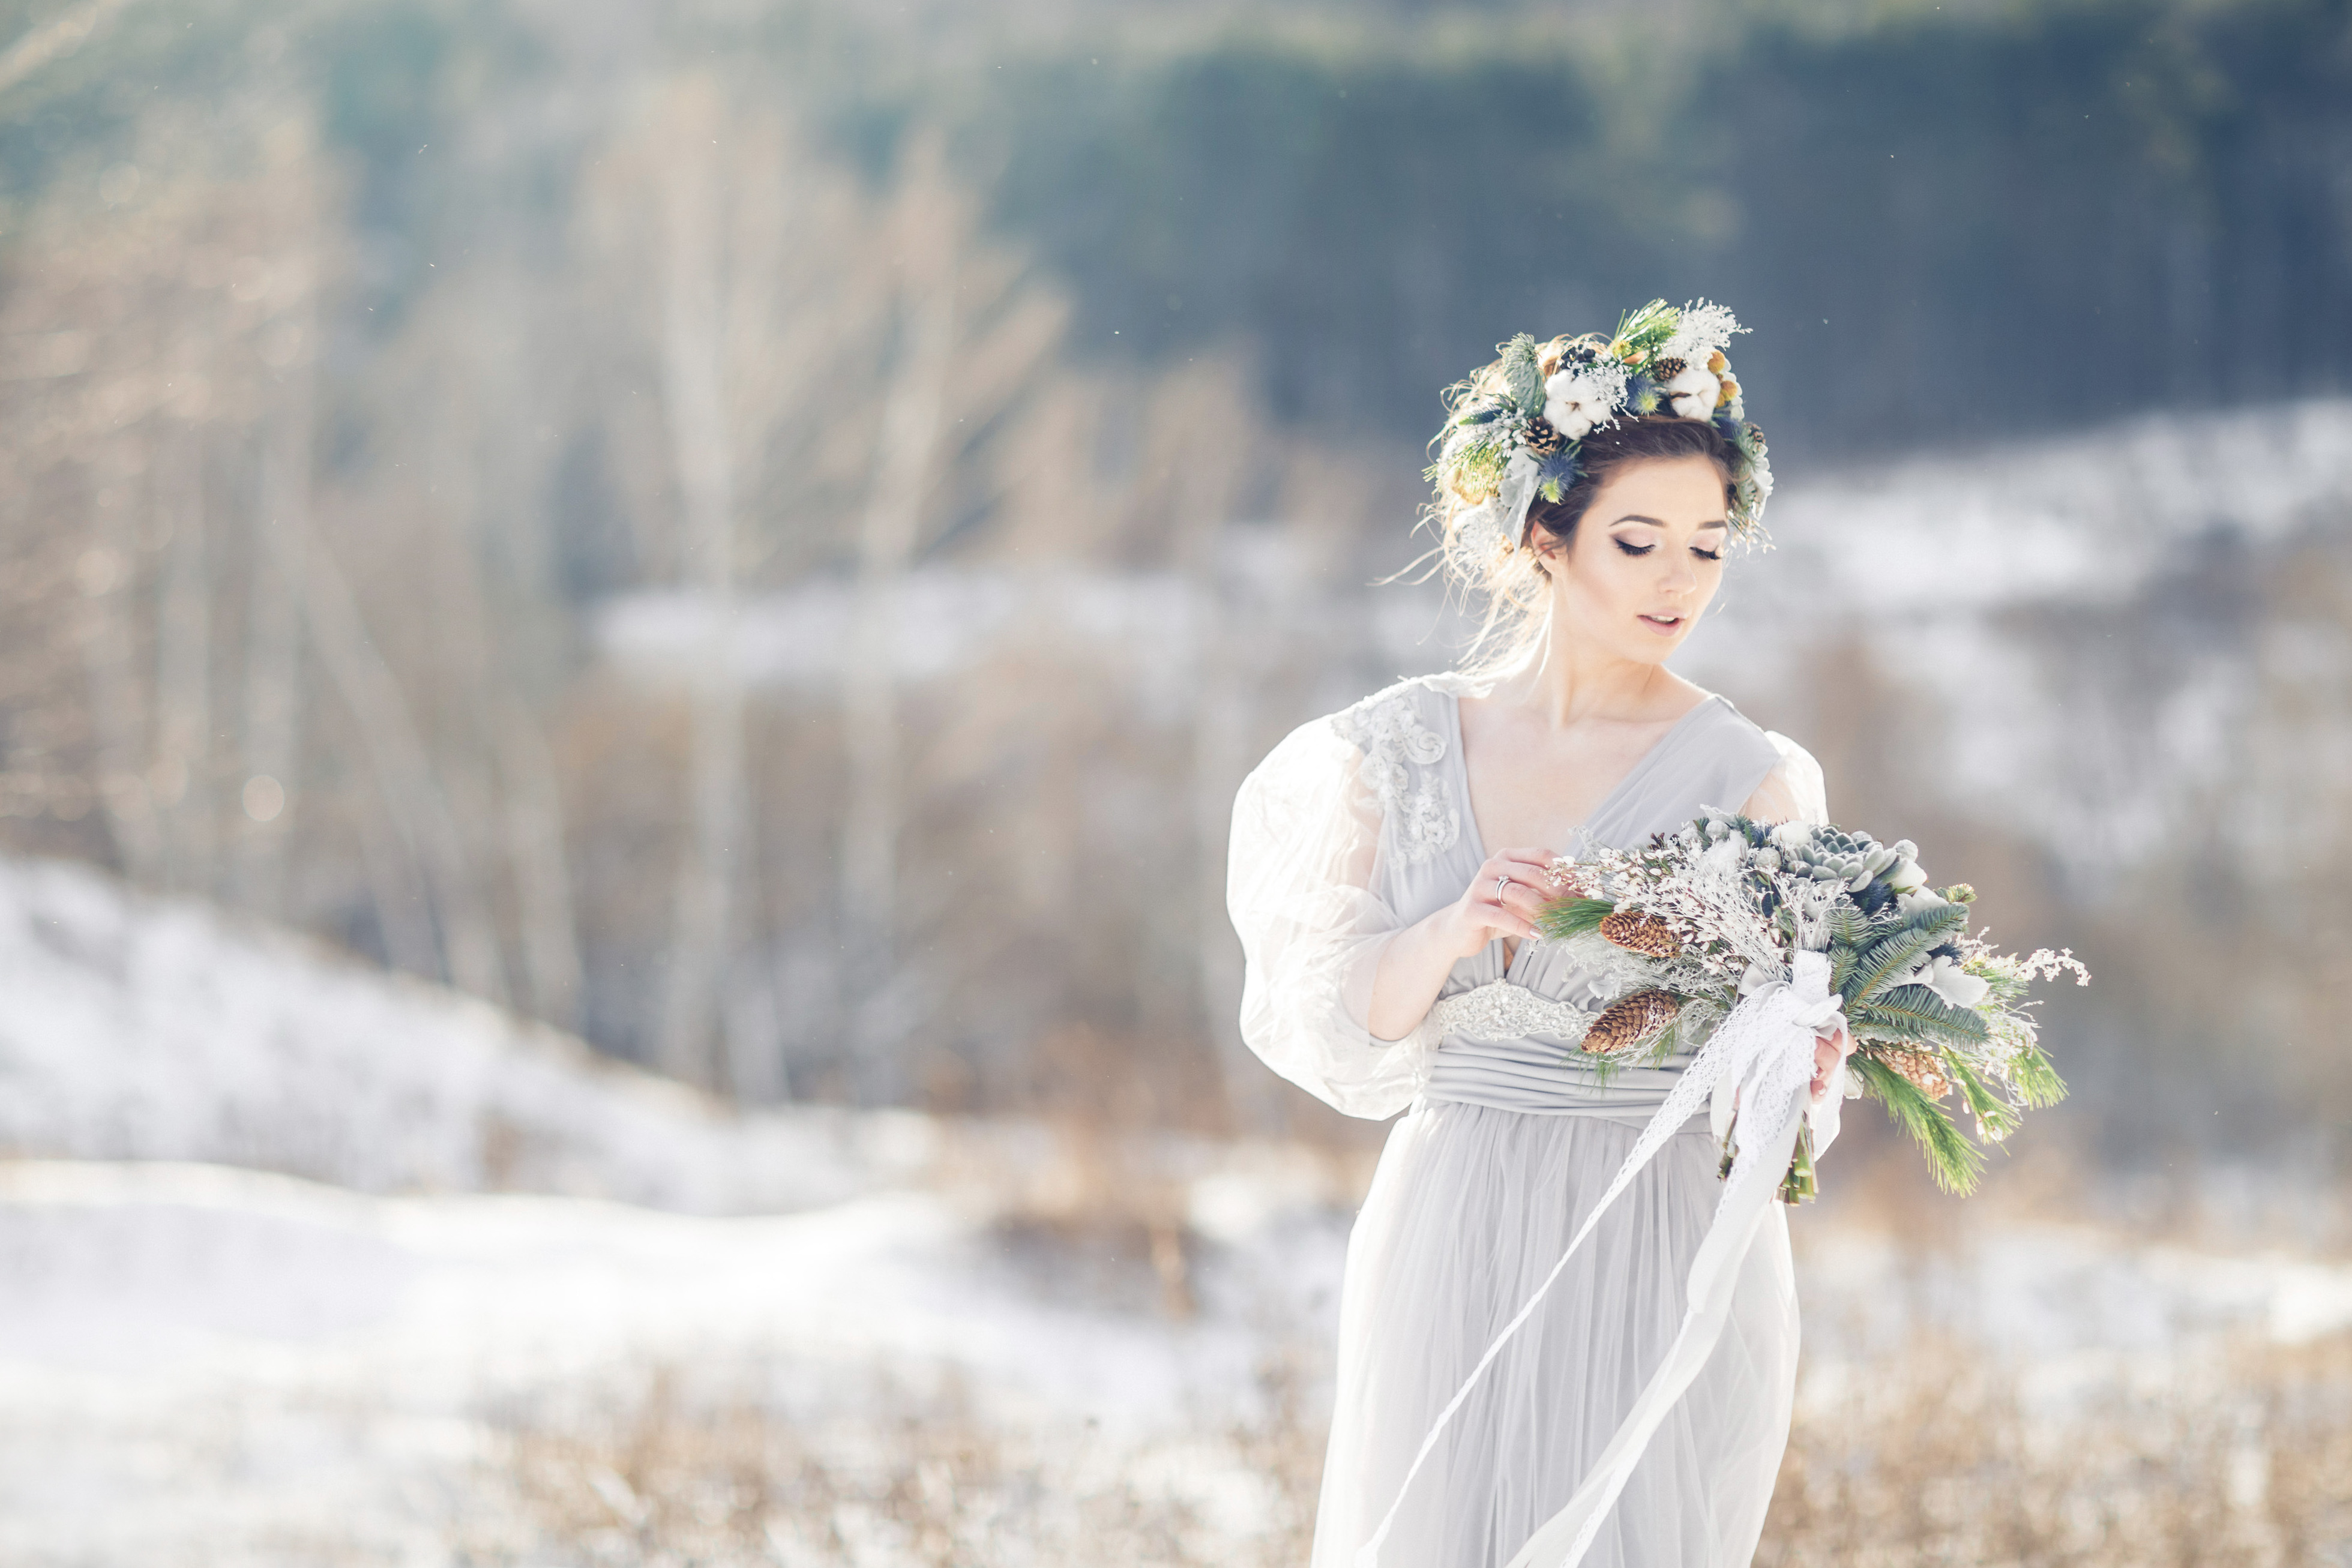 Beautiful bride admiring wedding bouquet. Winter wedding. Winter